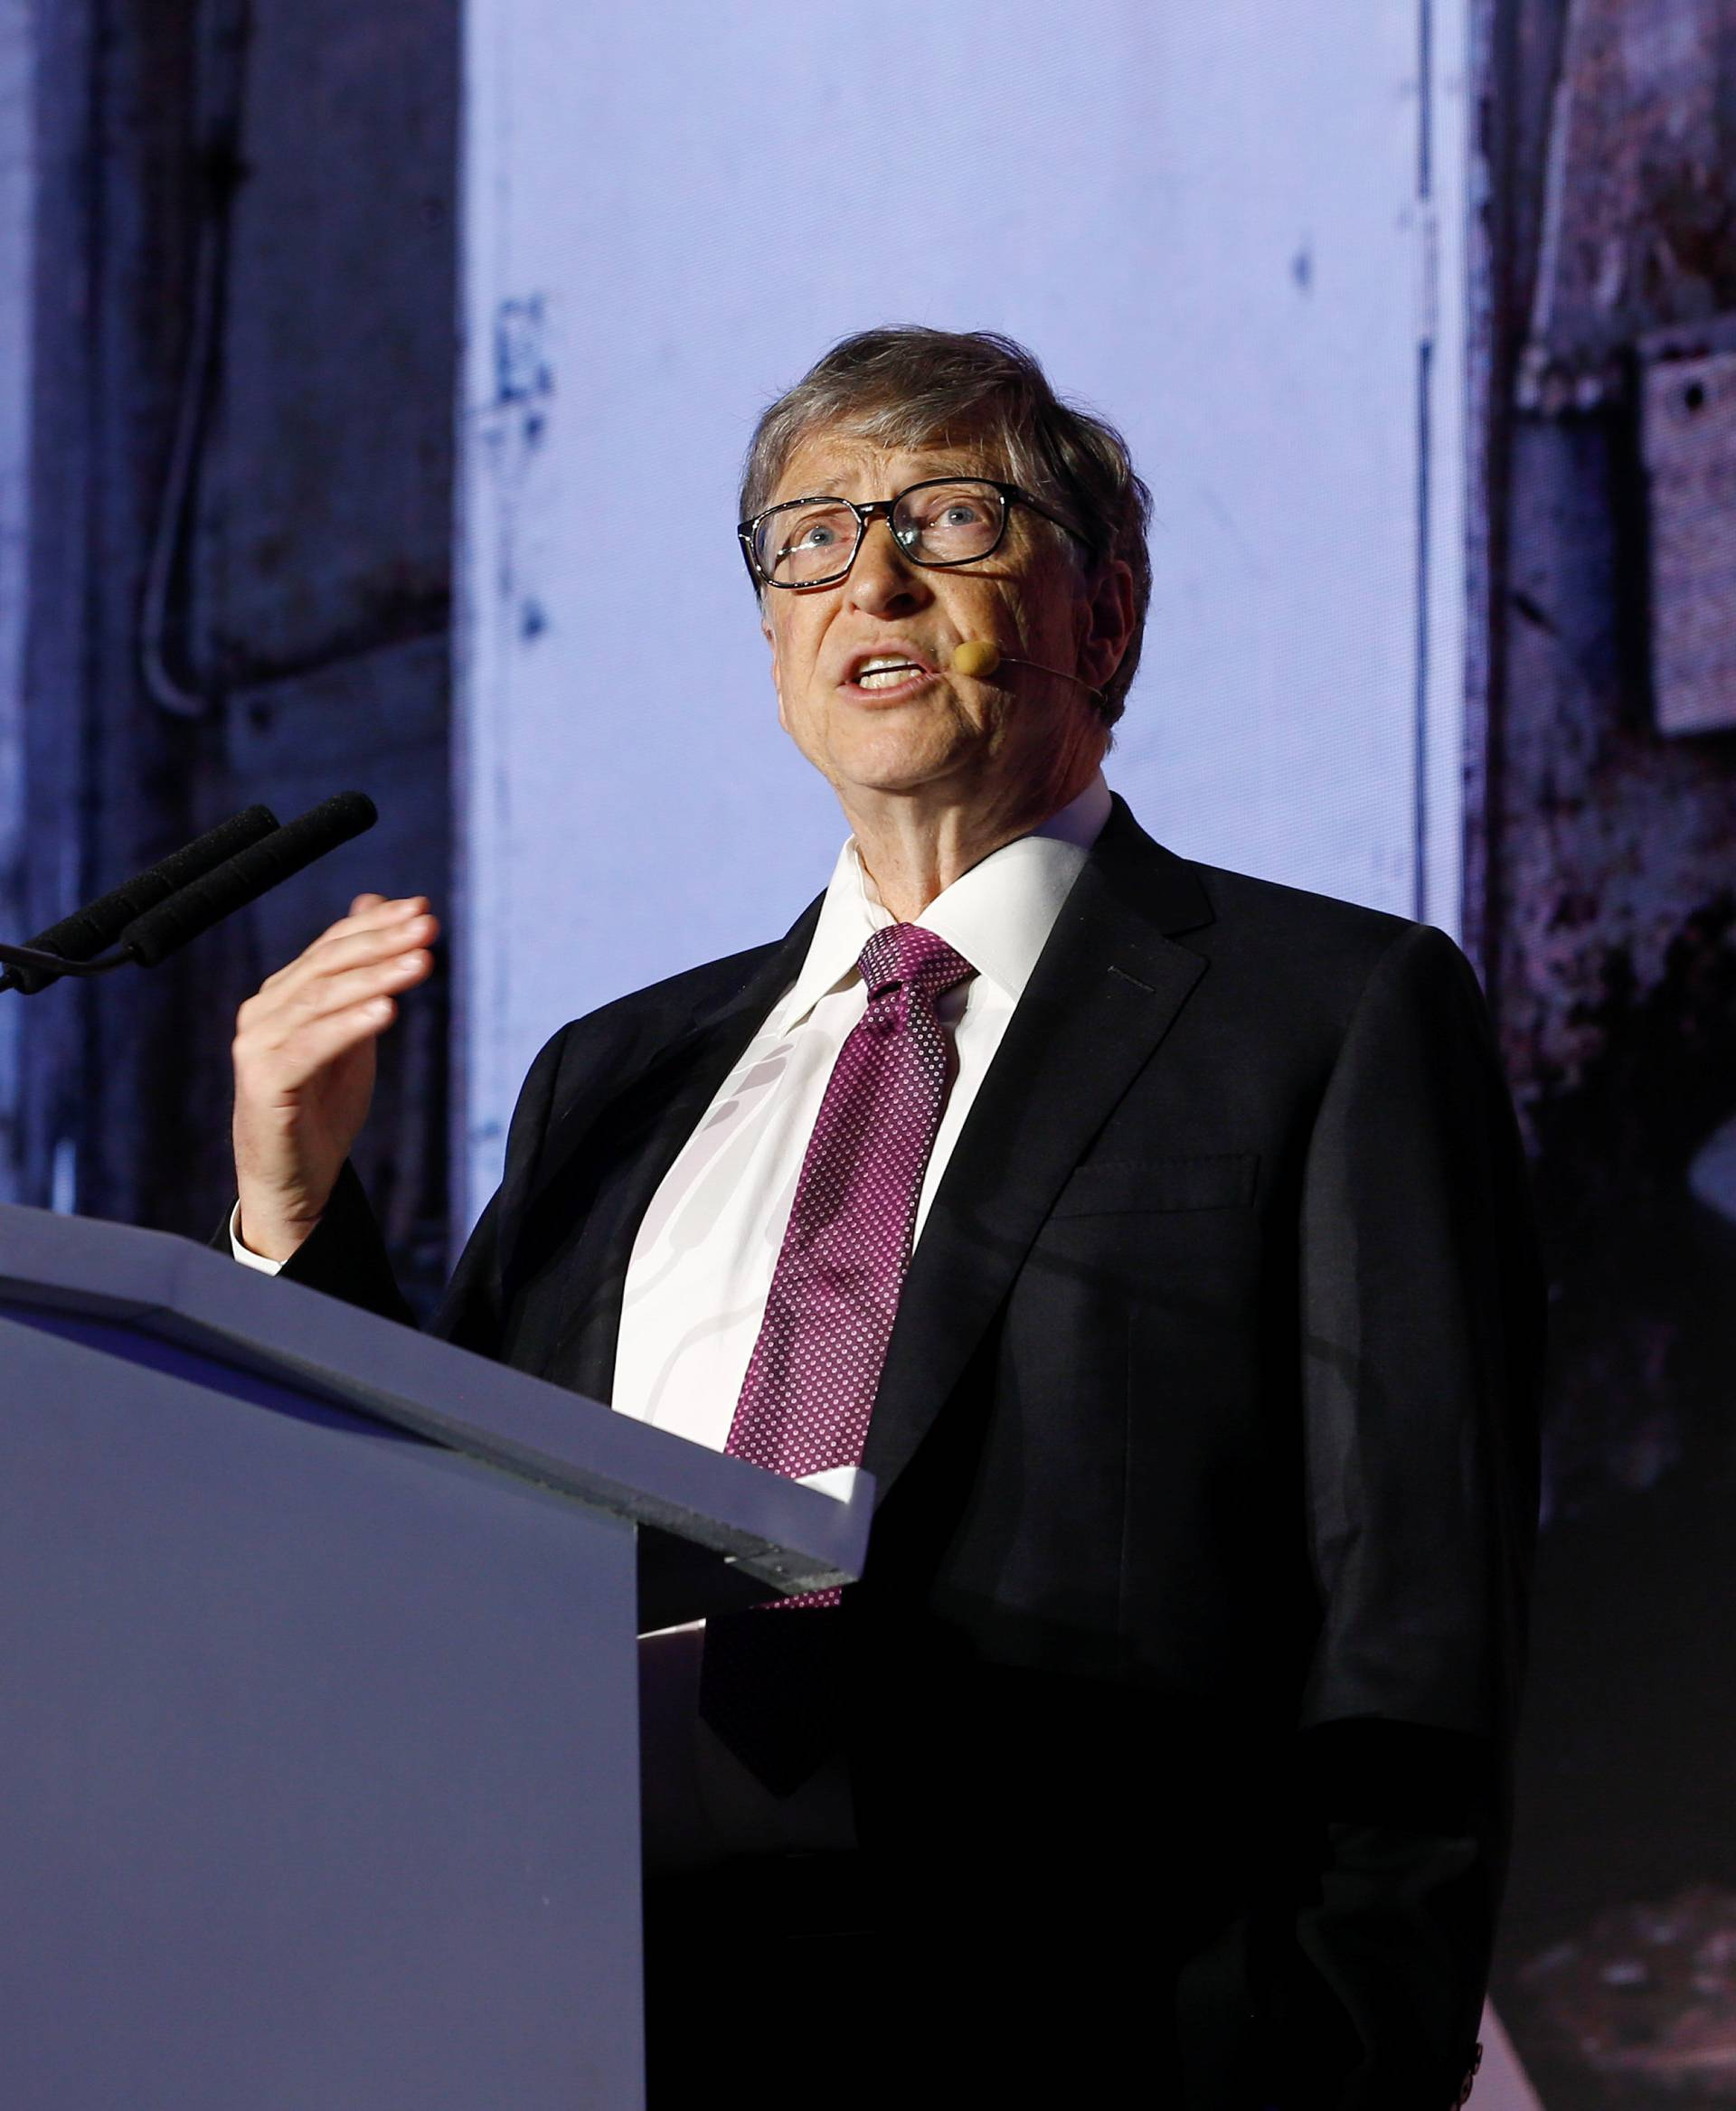 Microsoft founder Bill Gates speaks during the opening ceremony of the Reinvented Toilet Expo showcasing sewerless sanitation technology in Beijing